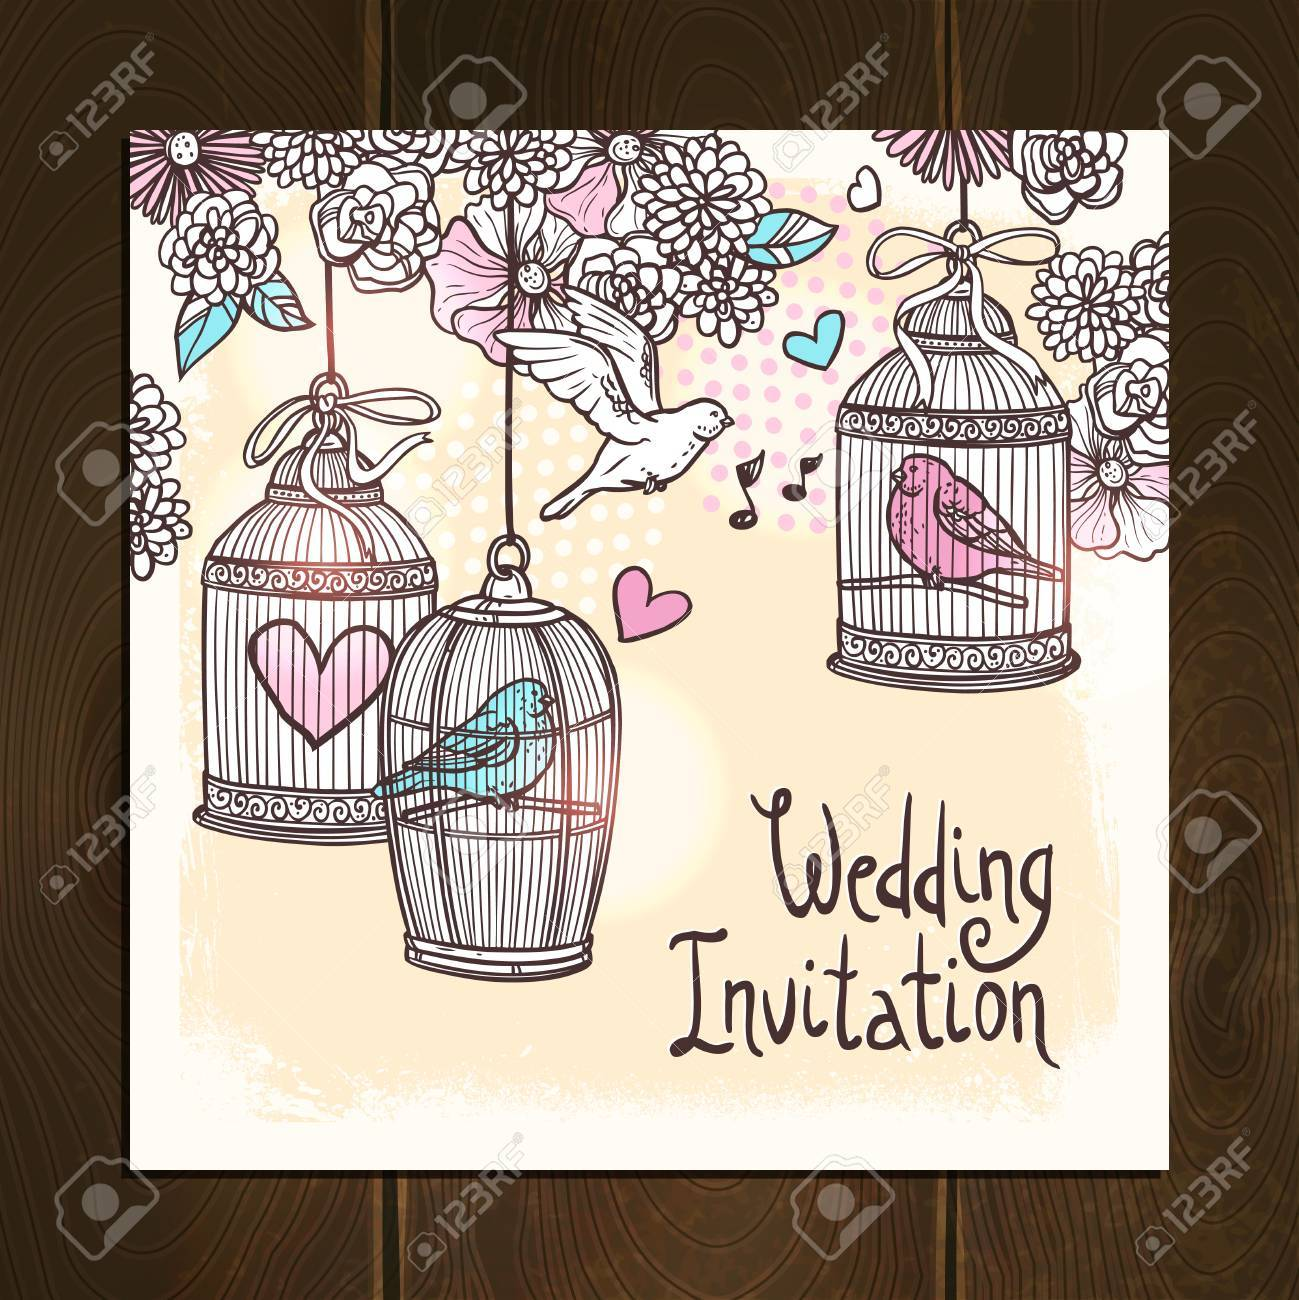 Wedding Invitation Card With Hand Drawn Birds In Cages With Flower ...